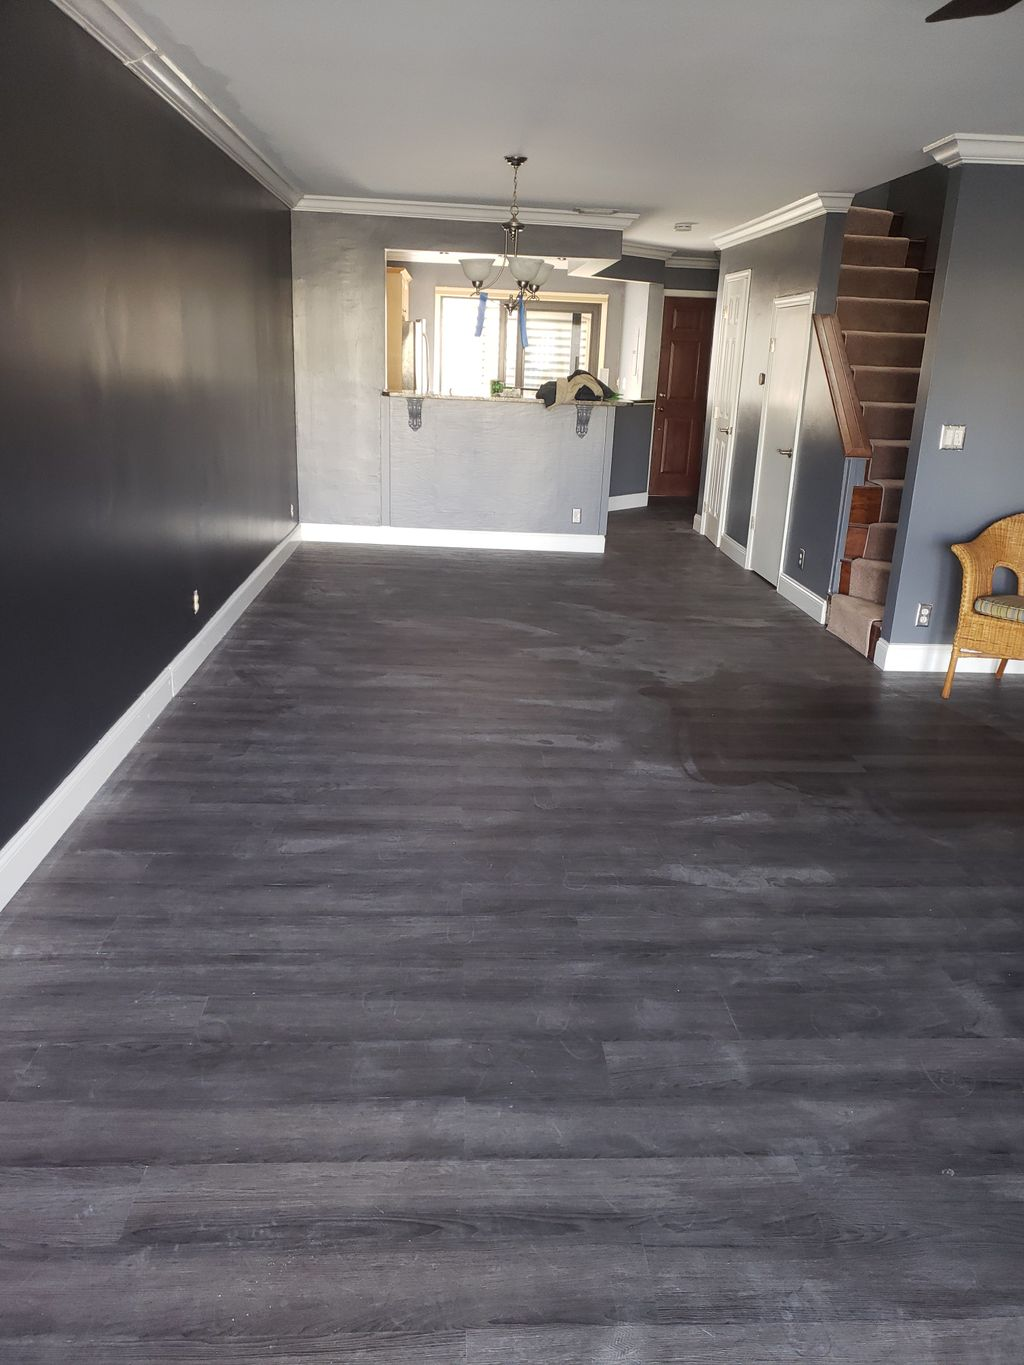 Interior Painting and floor - Fort Lauderdale 2021